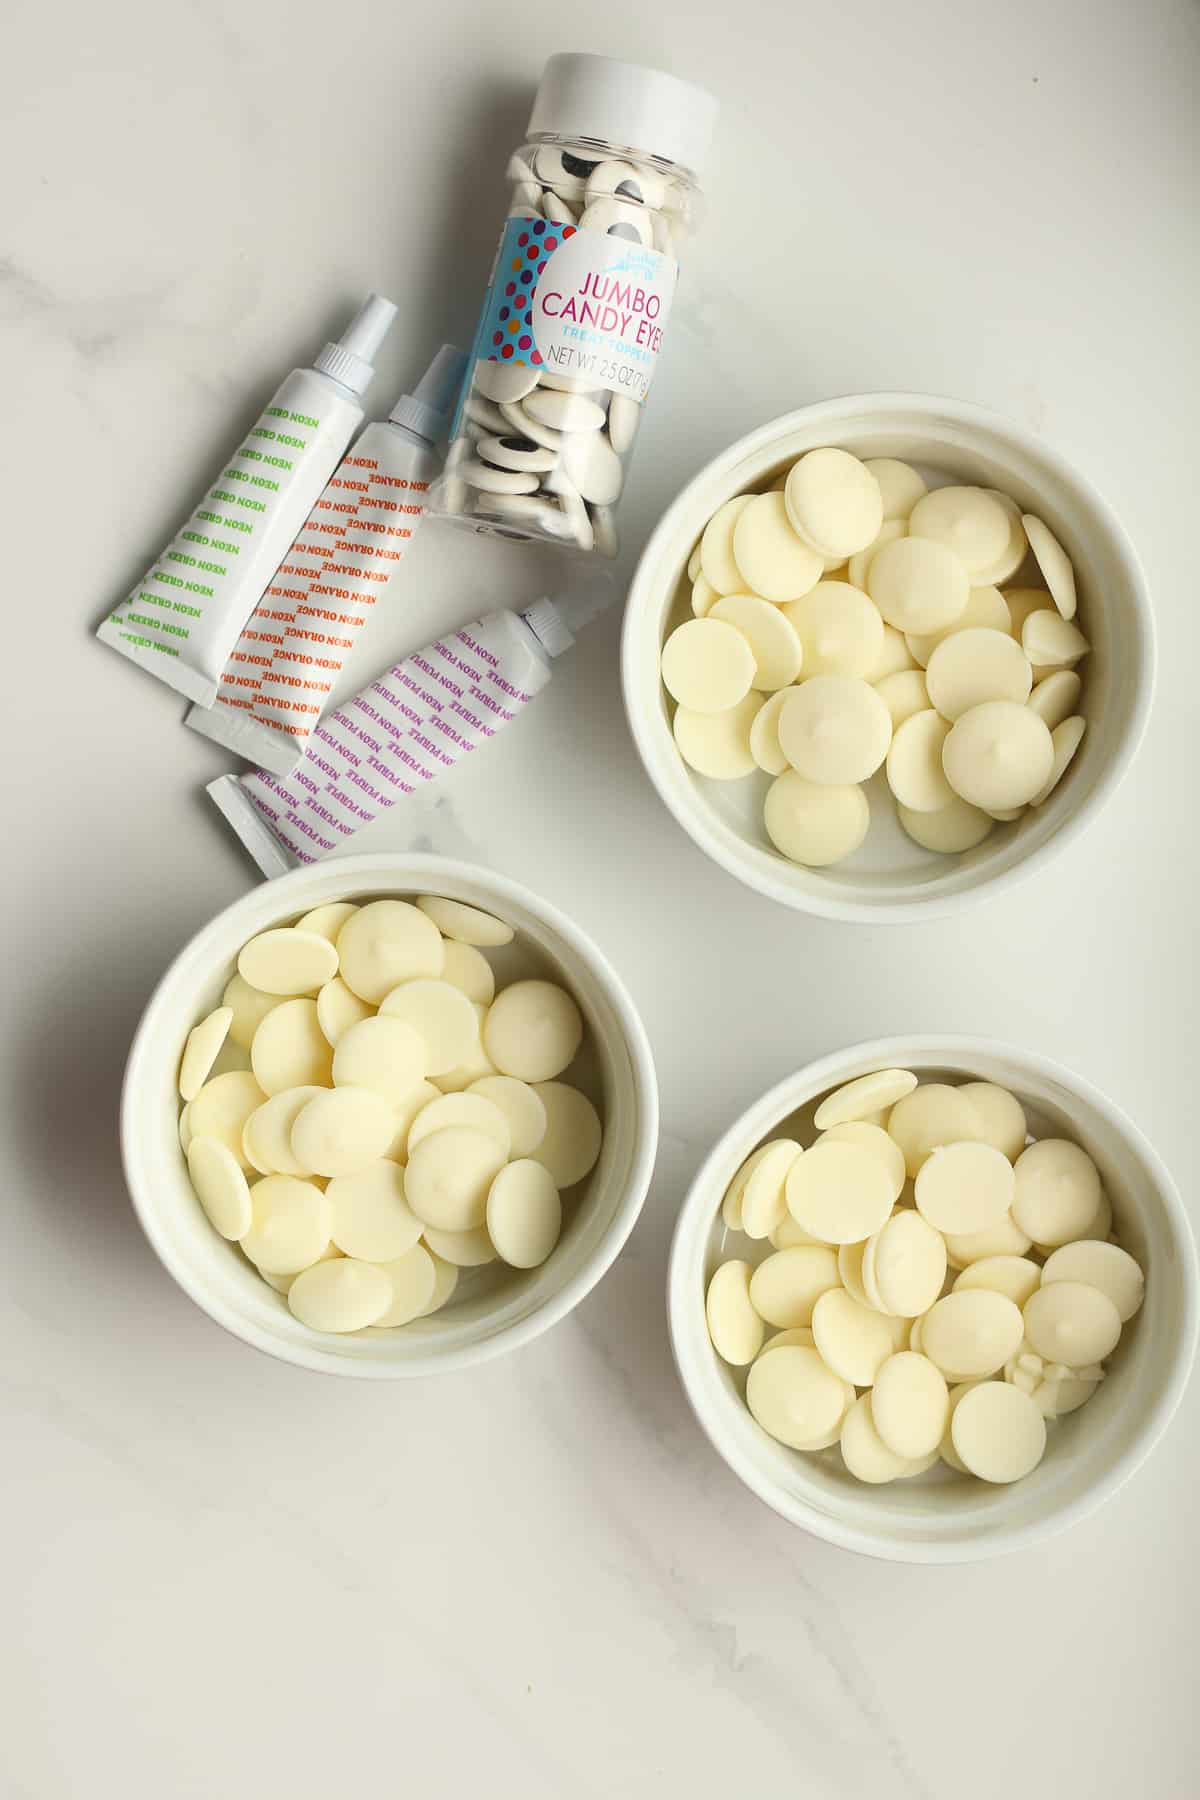 Three bowls with white melting wafers, and other decorating ingredients.